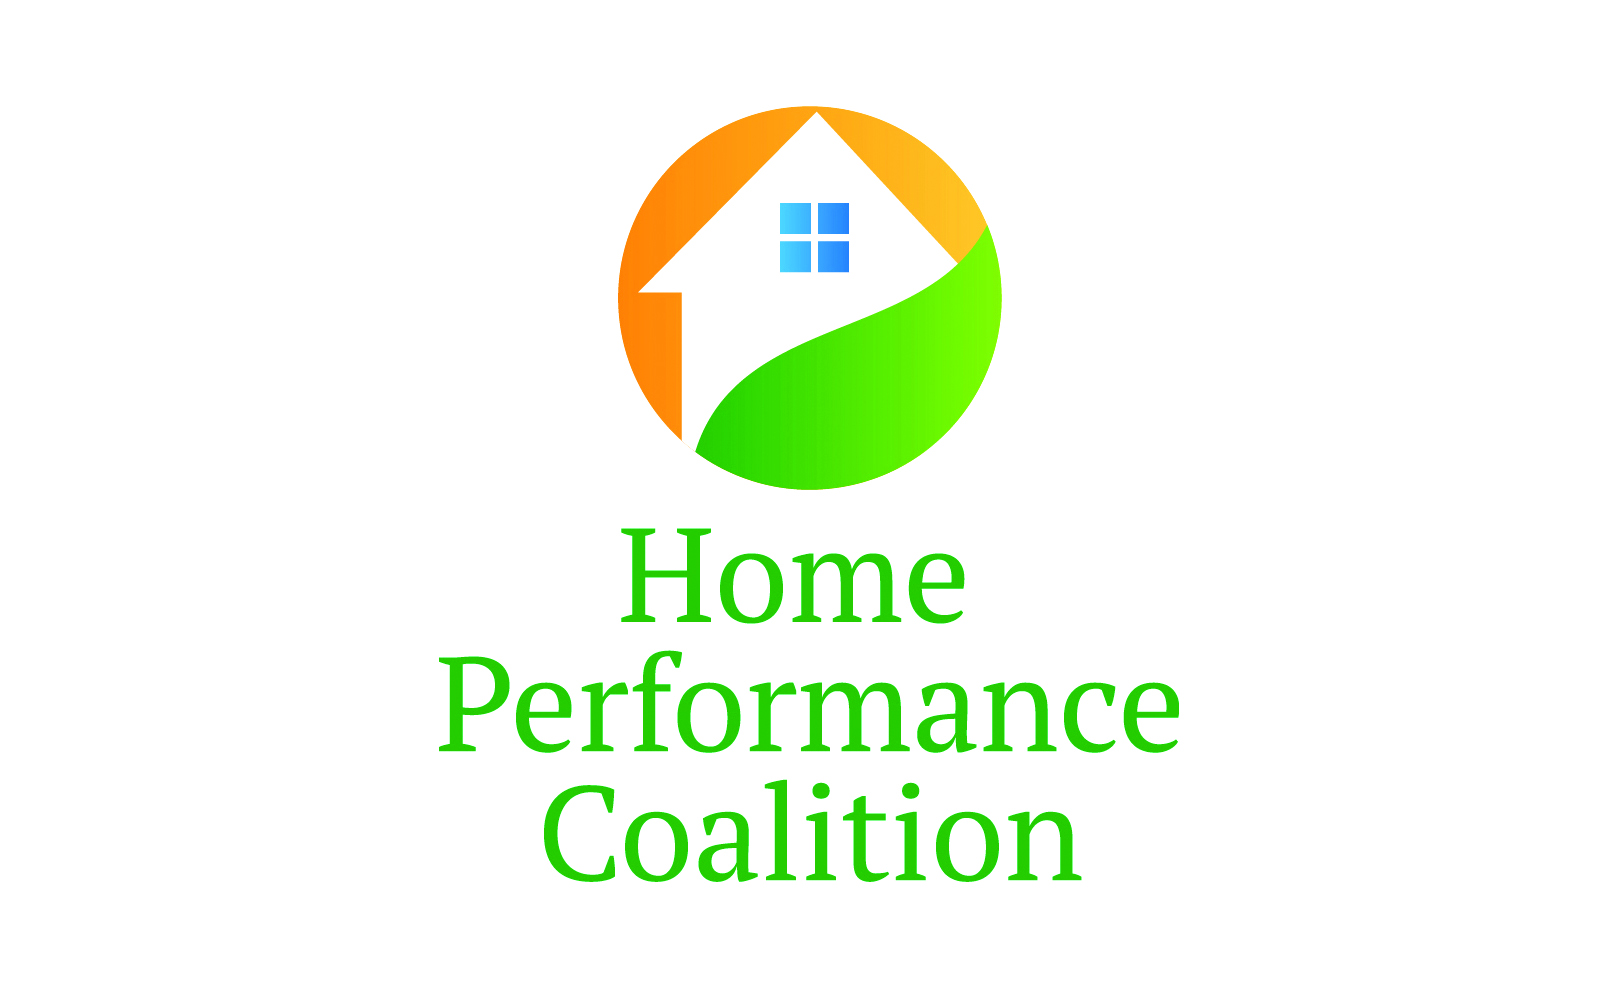 The Home Performance Coalition (HPC) was formed in 2013 through the merger of Affordable Comfort Inc. (ACI) and the National Home Performance Council.